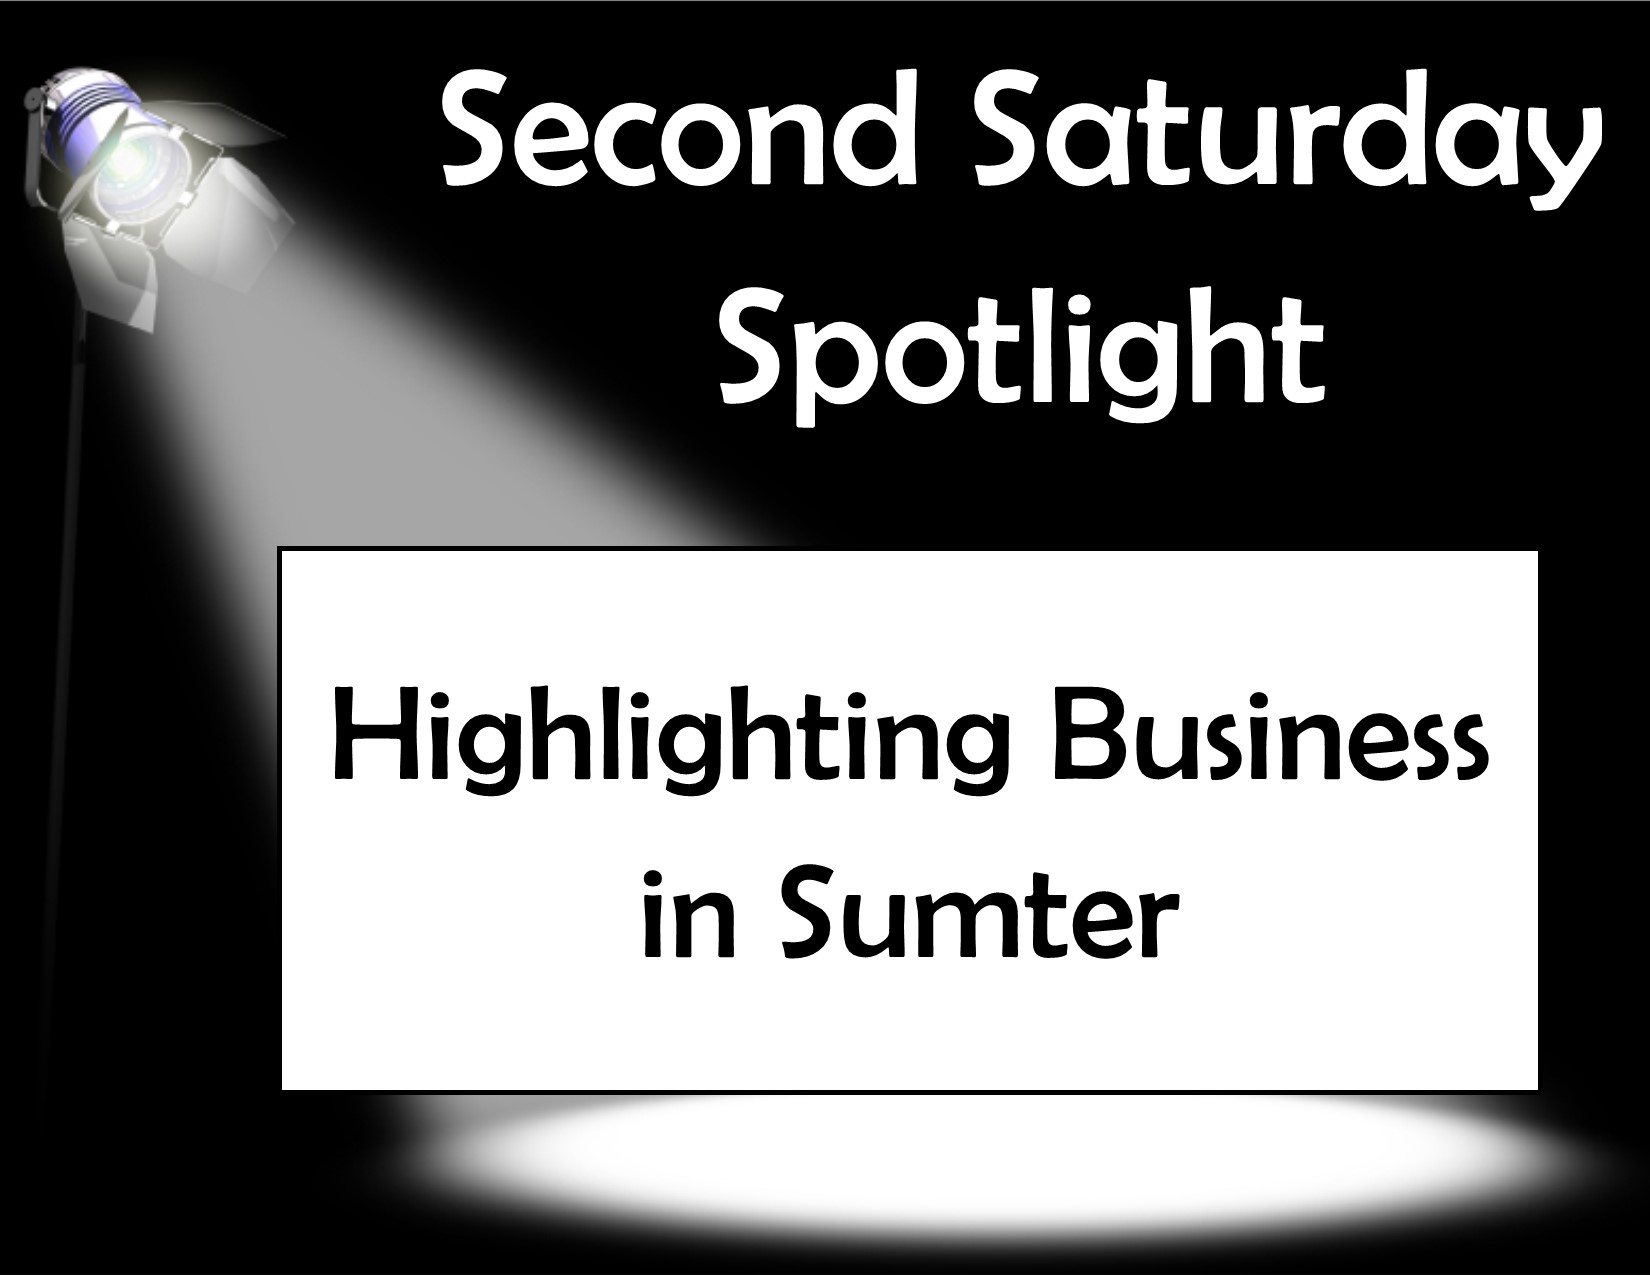 Second Saturday Spotlight